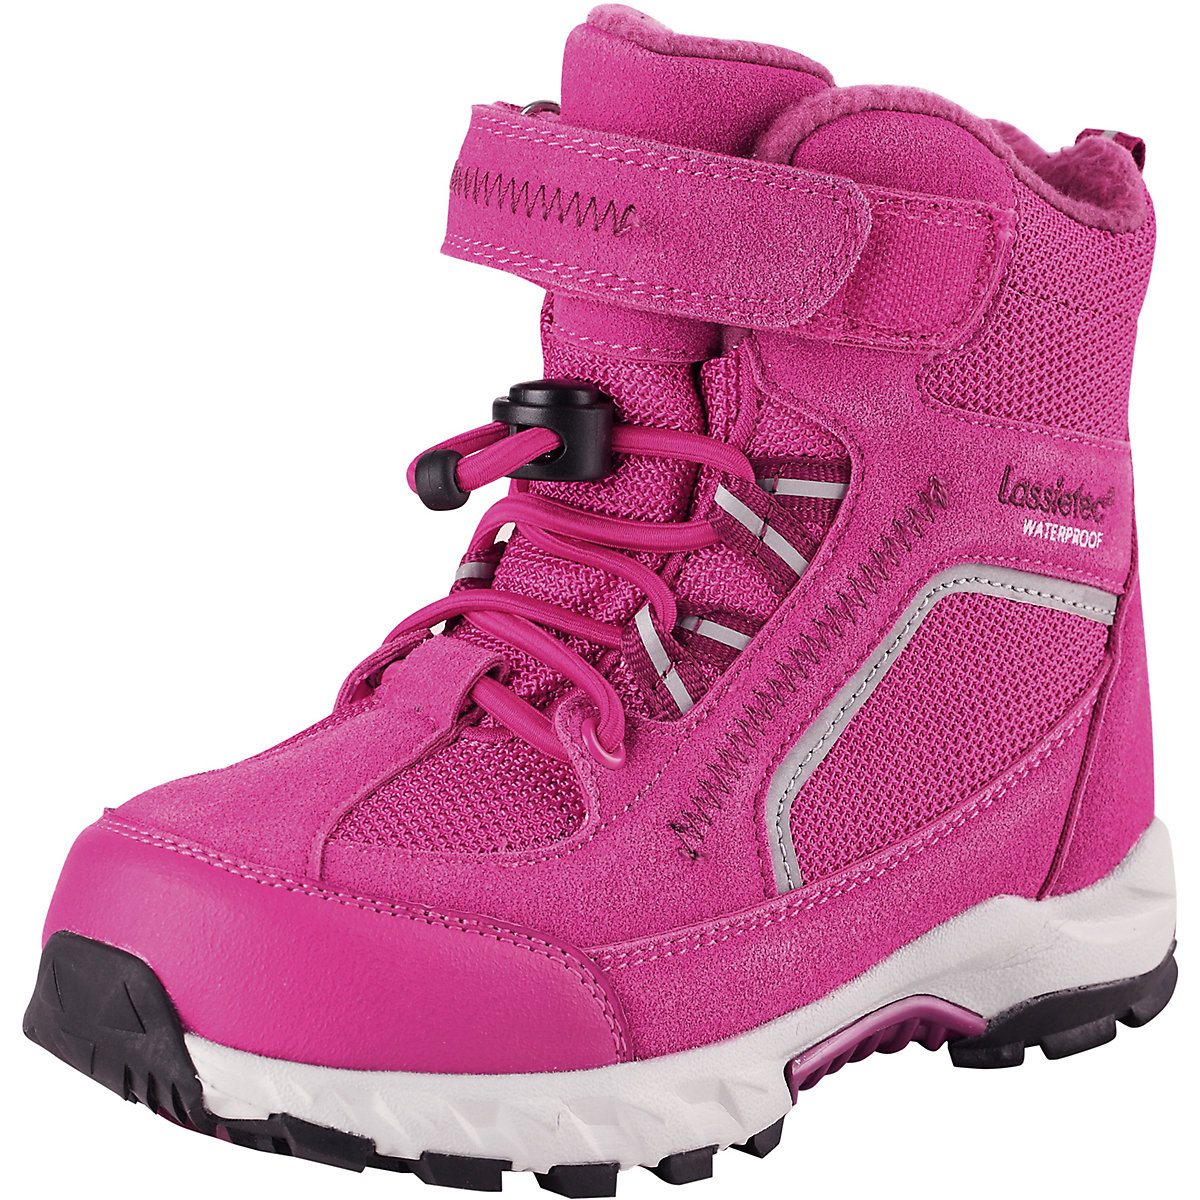 Boots LASSIE for girls 8623239 Valenki Uggi Winter shoes Children Kids